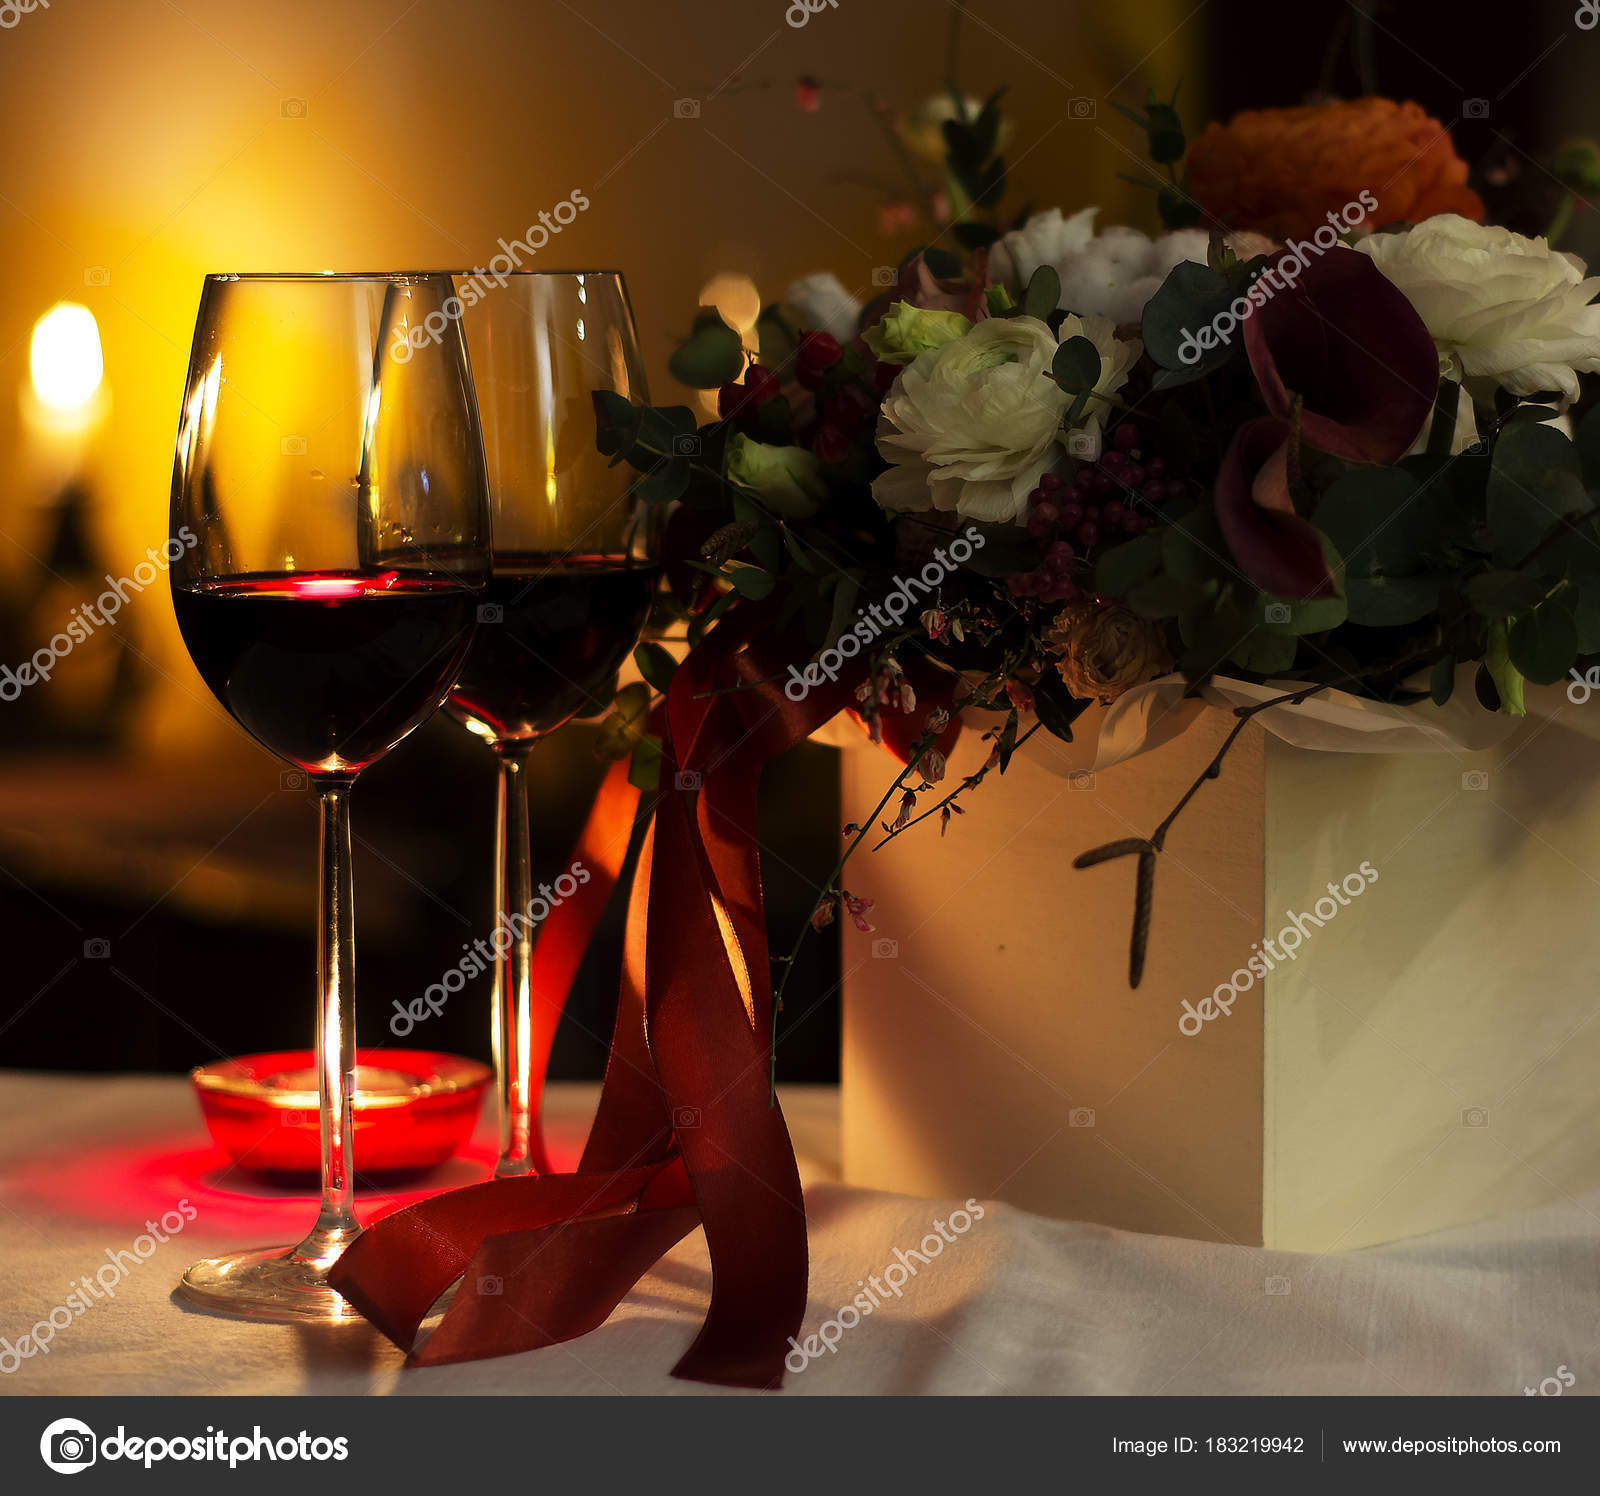 Wine Glasses Candle Flowers Restaurant Table Setting Romantic - Wine glass table setting